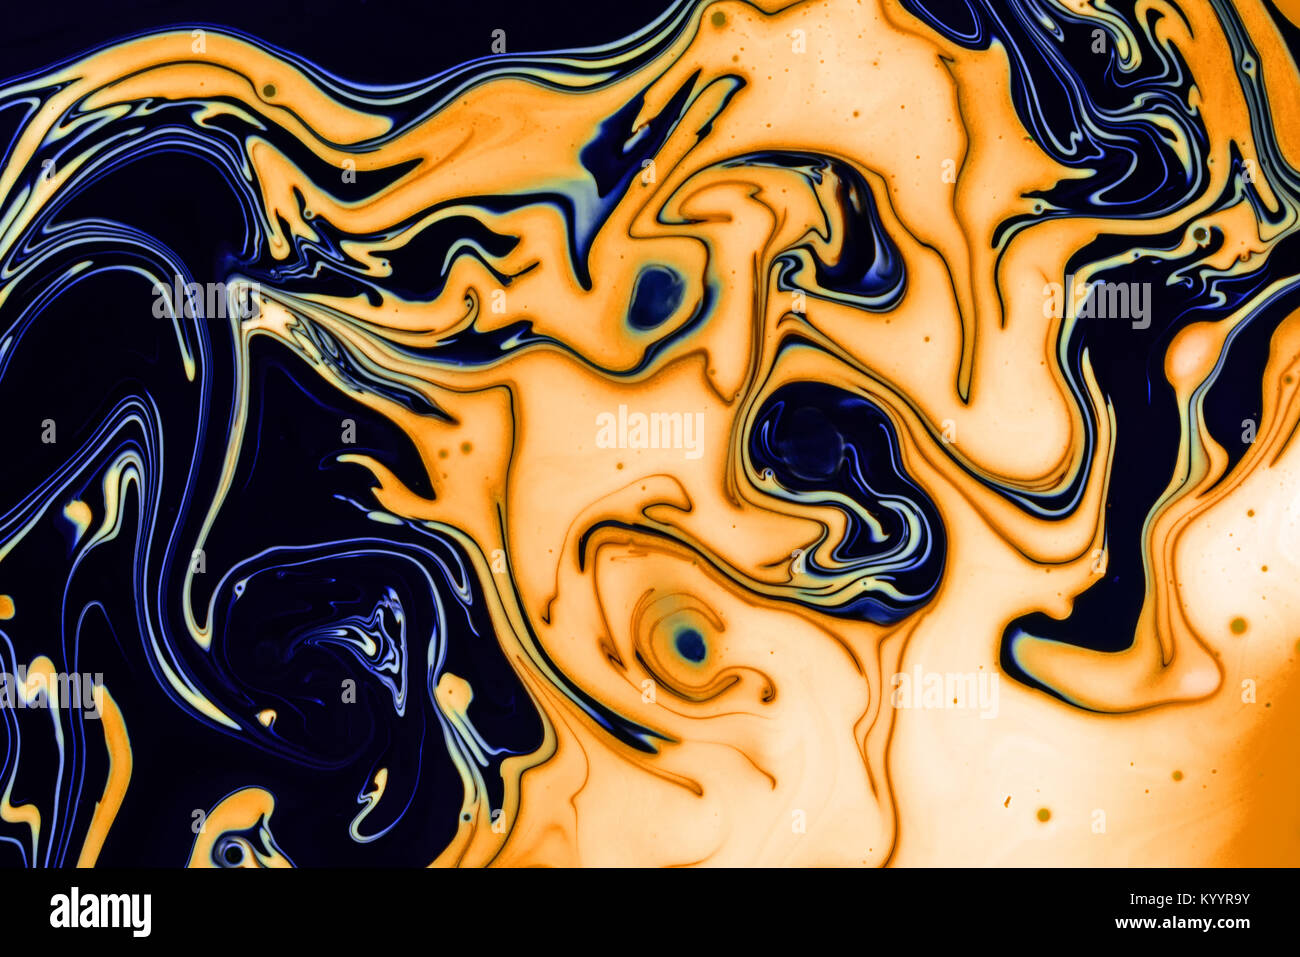 Swirling paint oil abstracts of water and acrylic paint creating a hazardous pollution theme for environment and - Stock Image